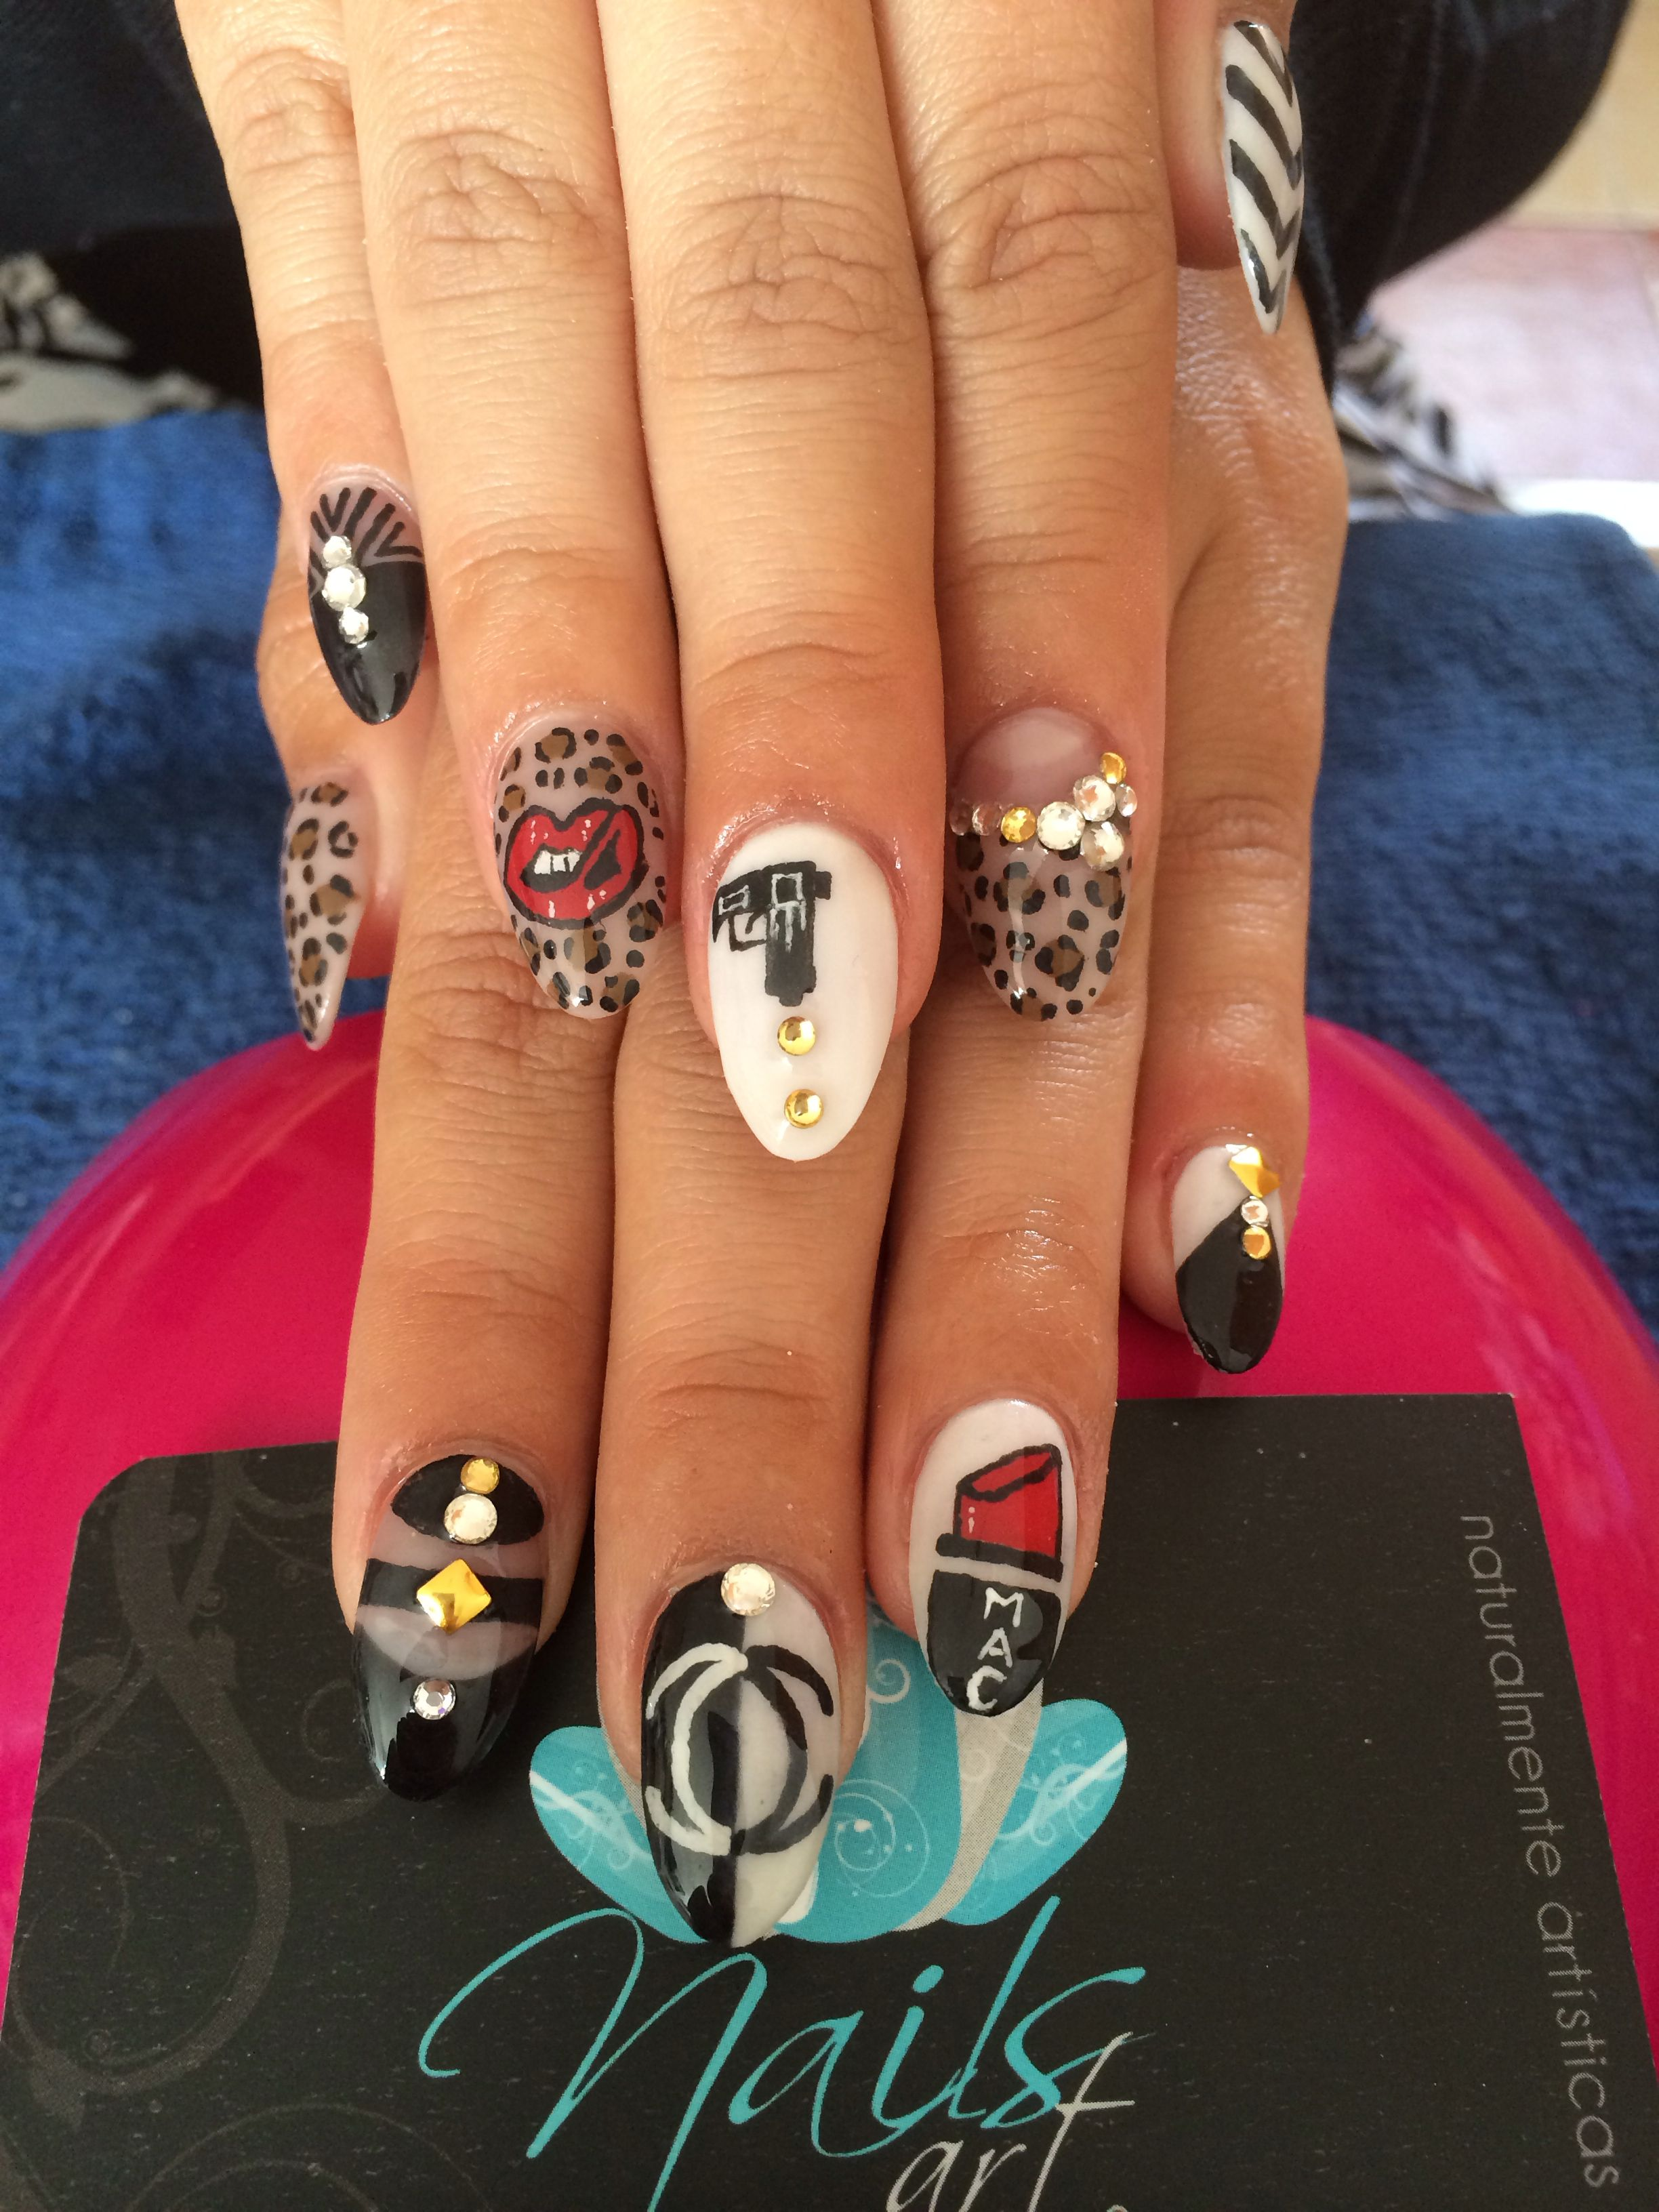 Nails art, acrylic nails, fashion nails | Fun nails! | Pinterest ...